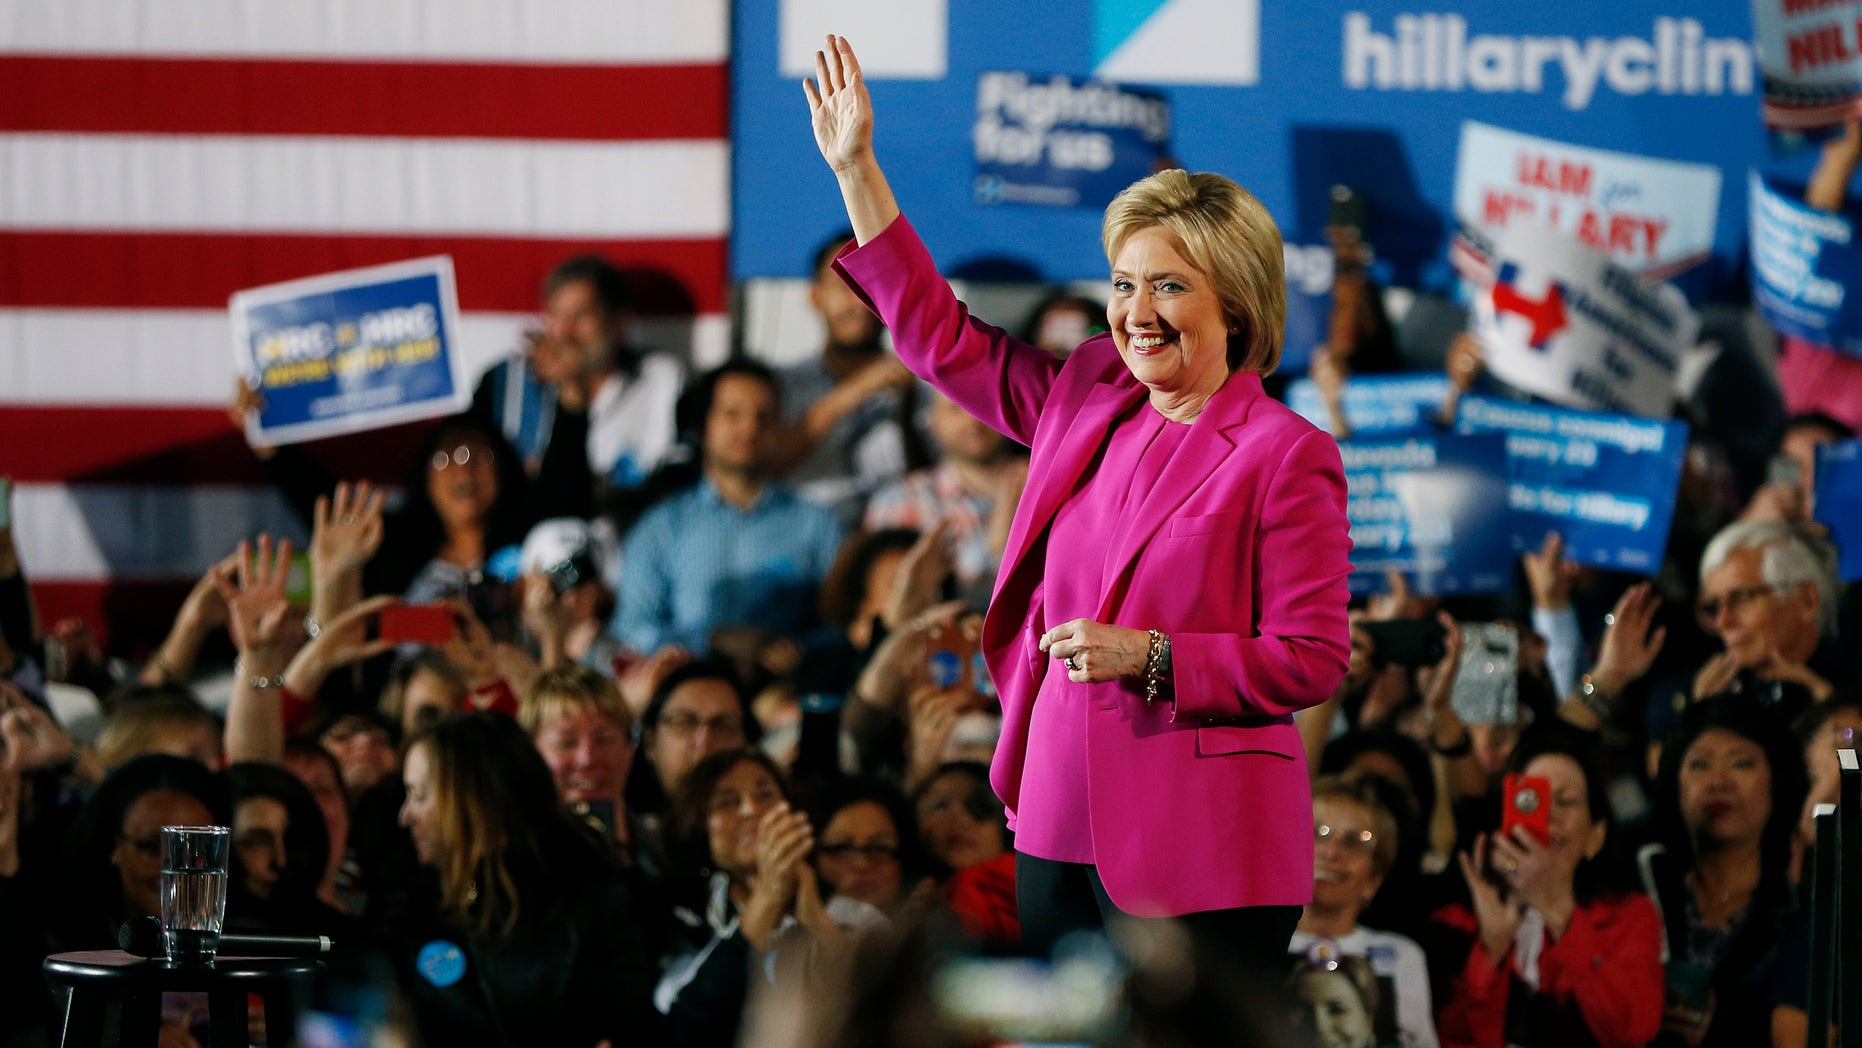 Democratic candidate Hillary Clinton speaks at a rally Thursday, Feb. 18, 2016, in Las Vegas.